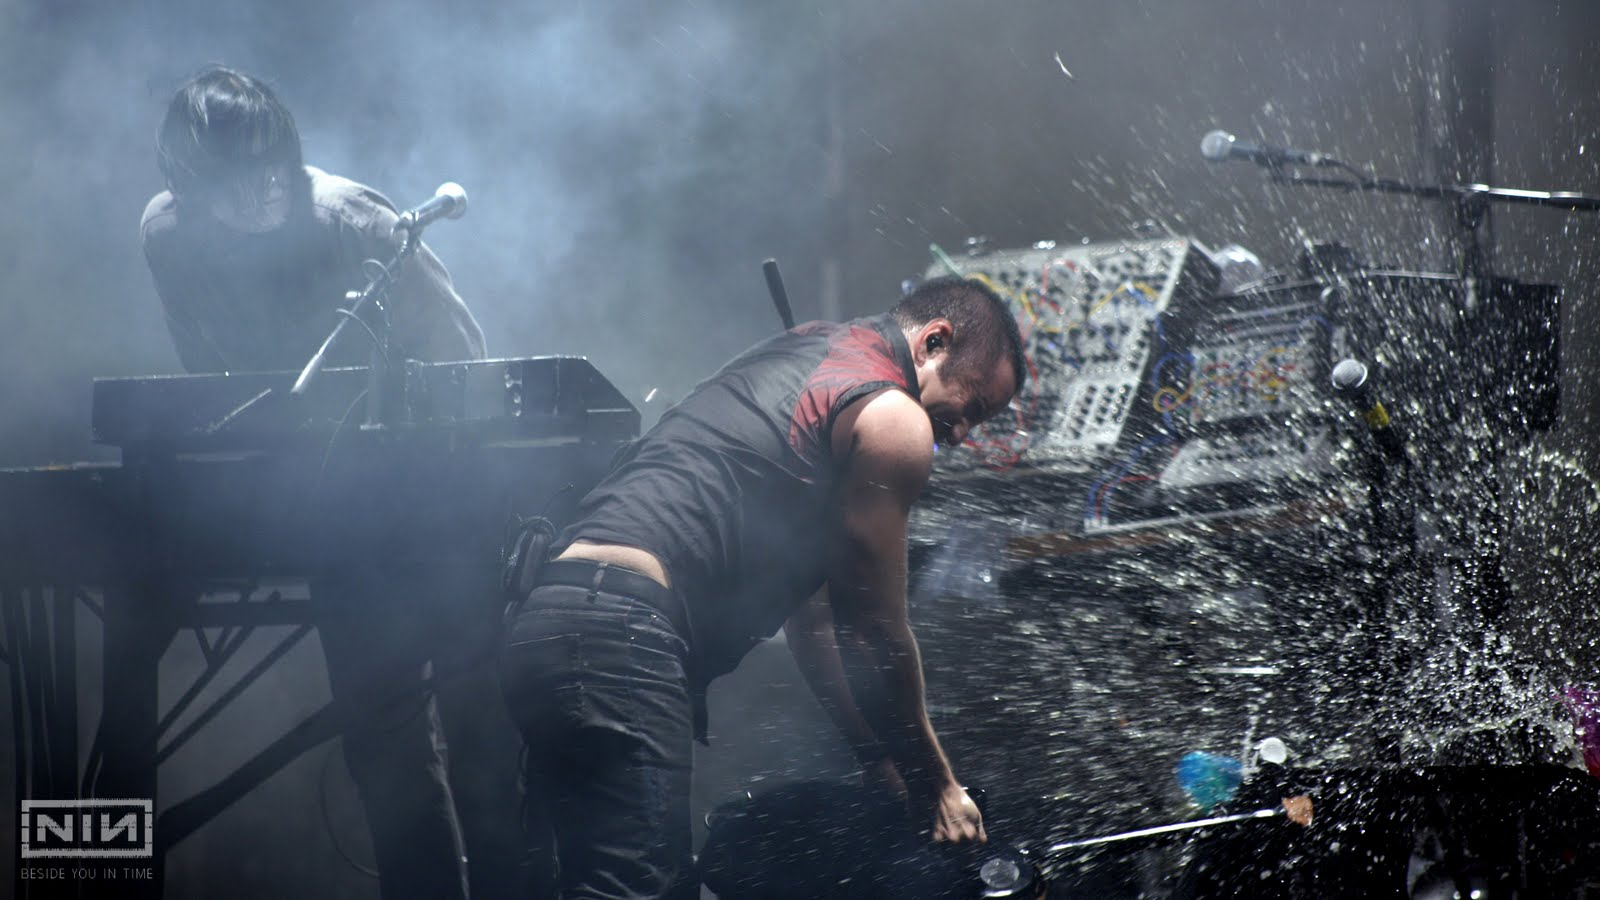 Liana Conis Blog: nine inch nails hd